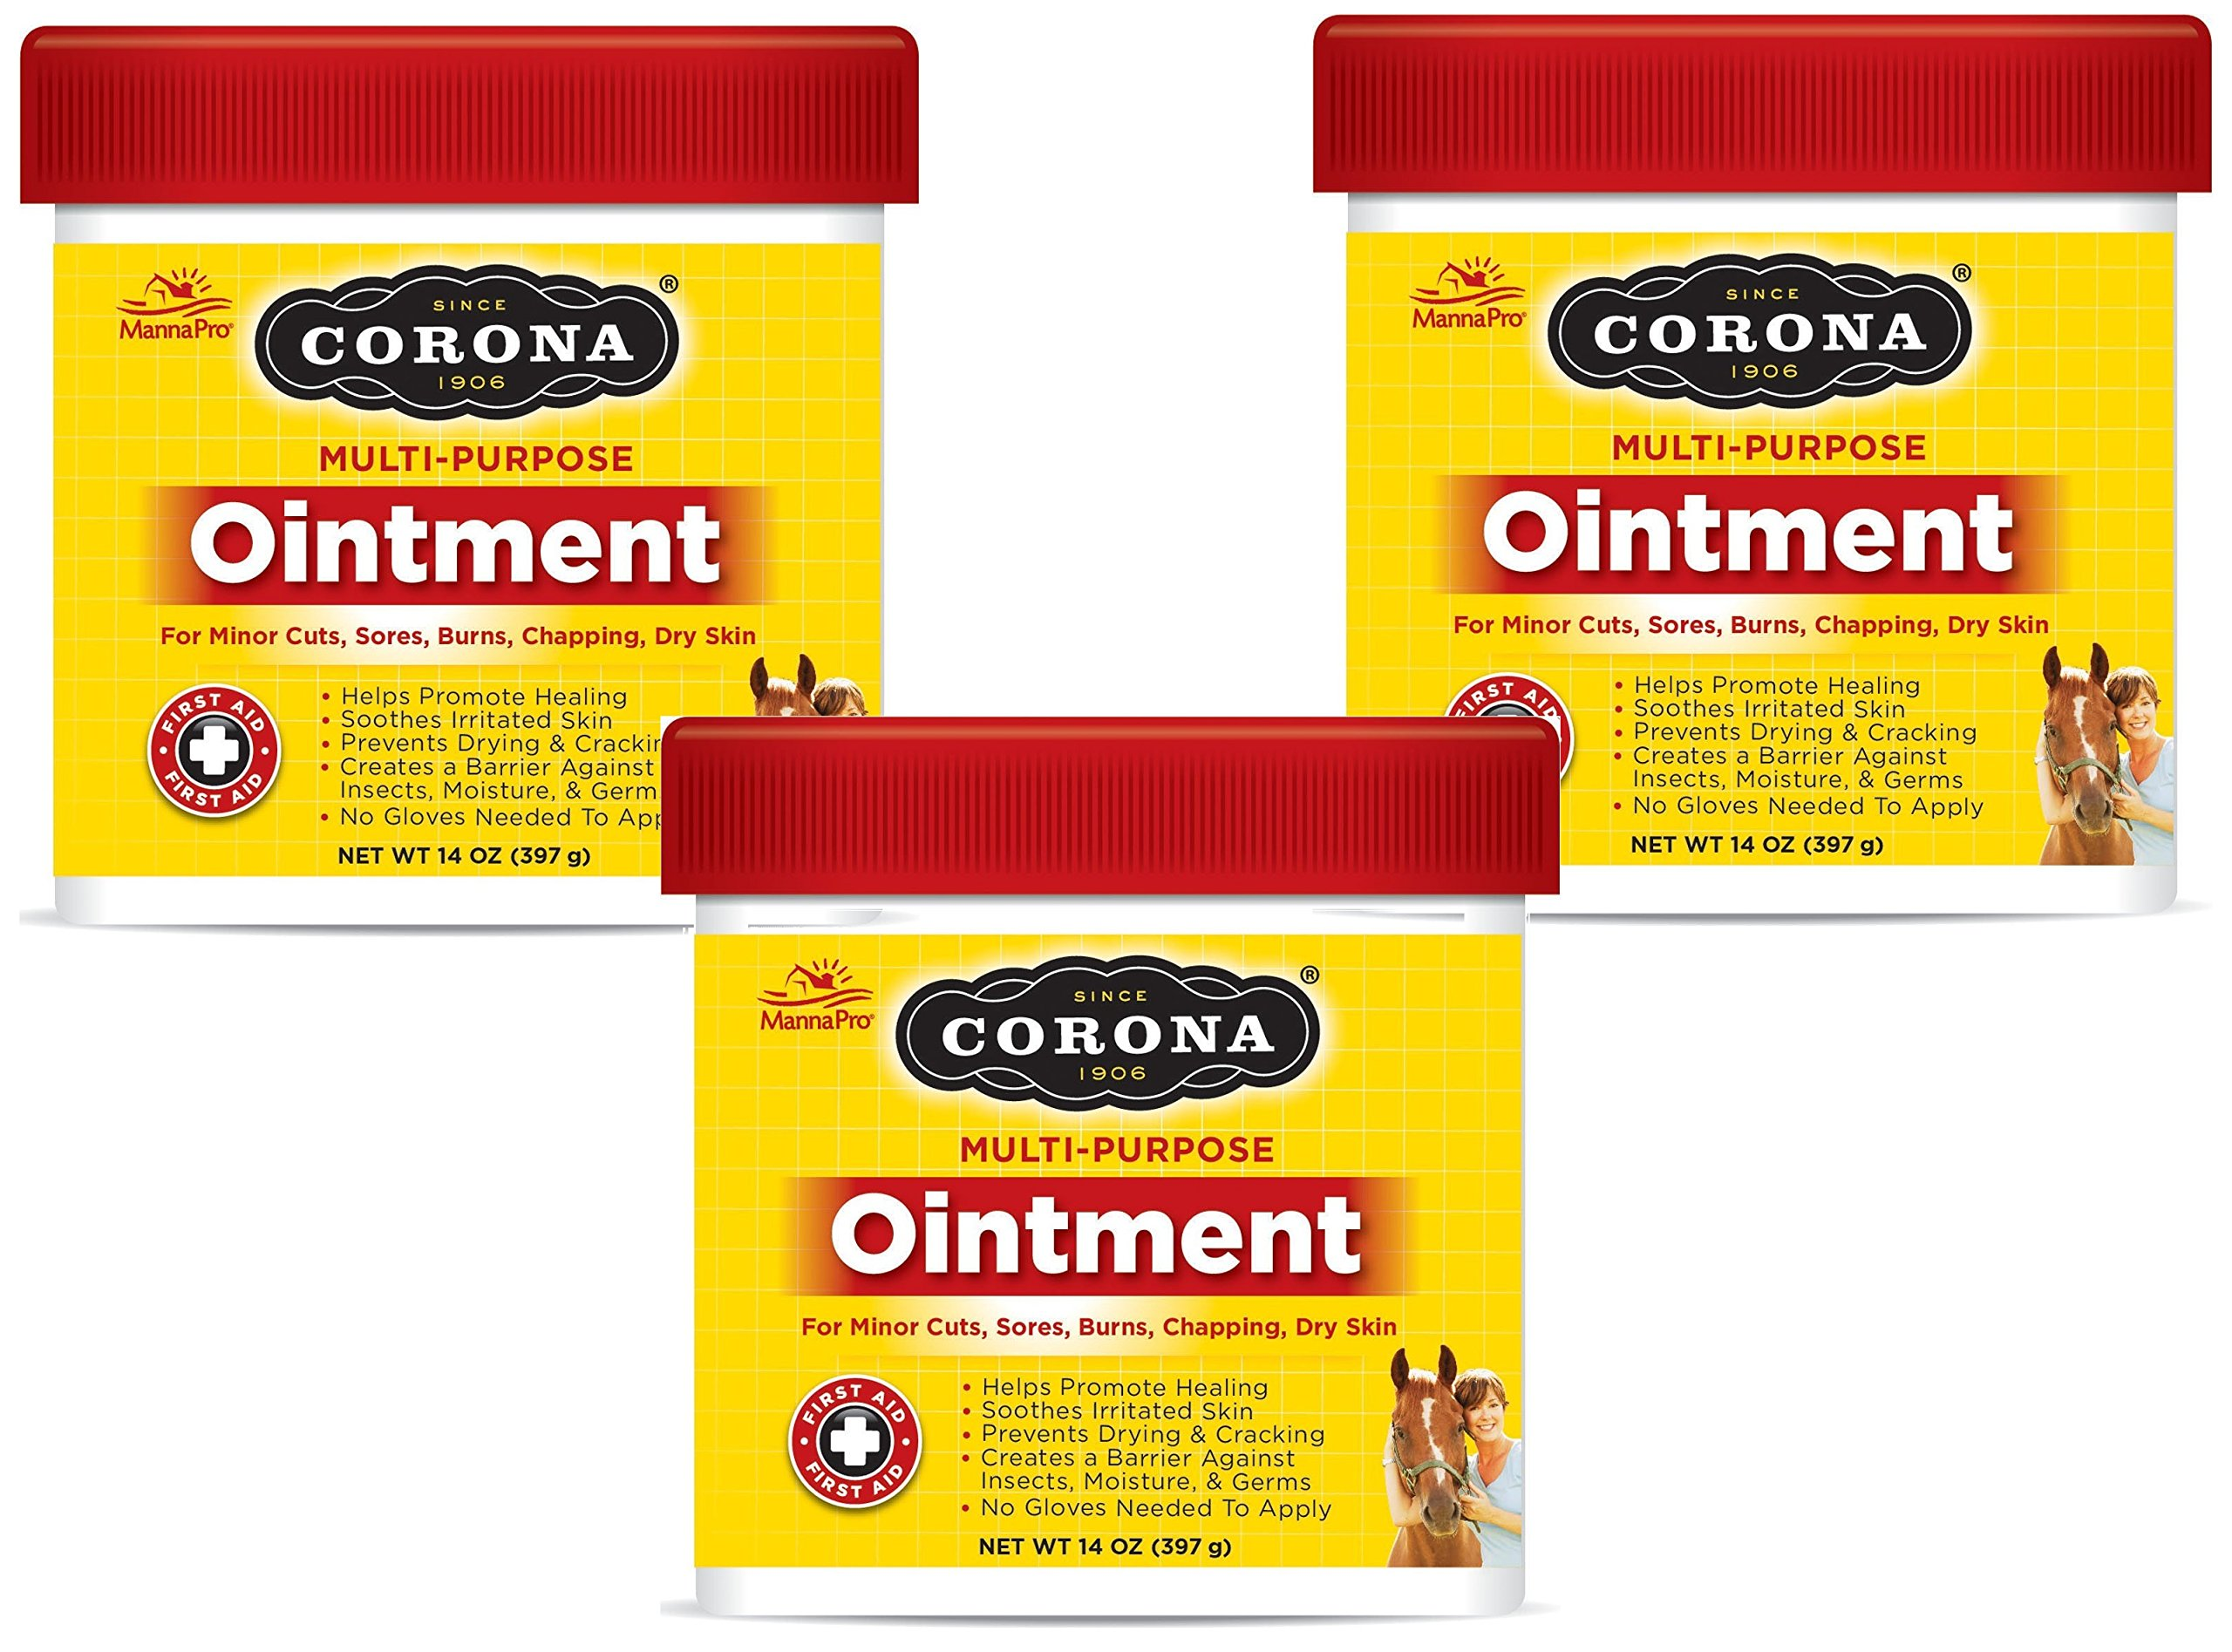 Corona Ointment 14 Oz., Jar (Pack of 3) by Manna Pro